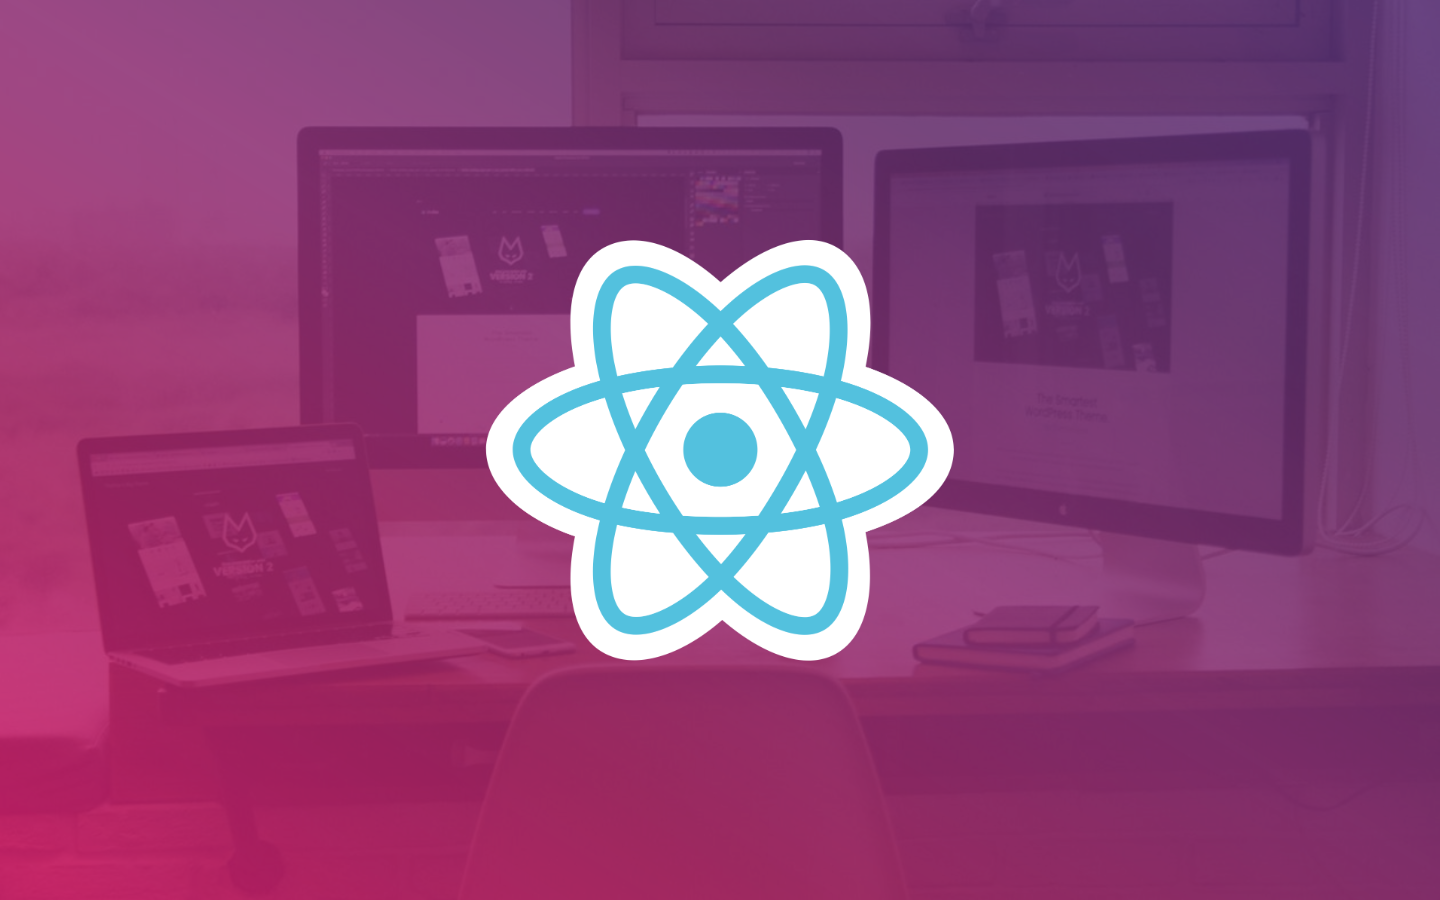 Basic Conditional Rendering In React Using the Logical && Operator